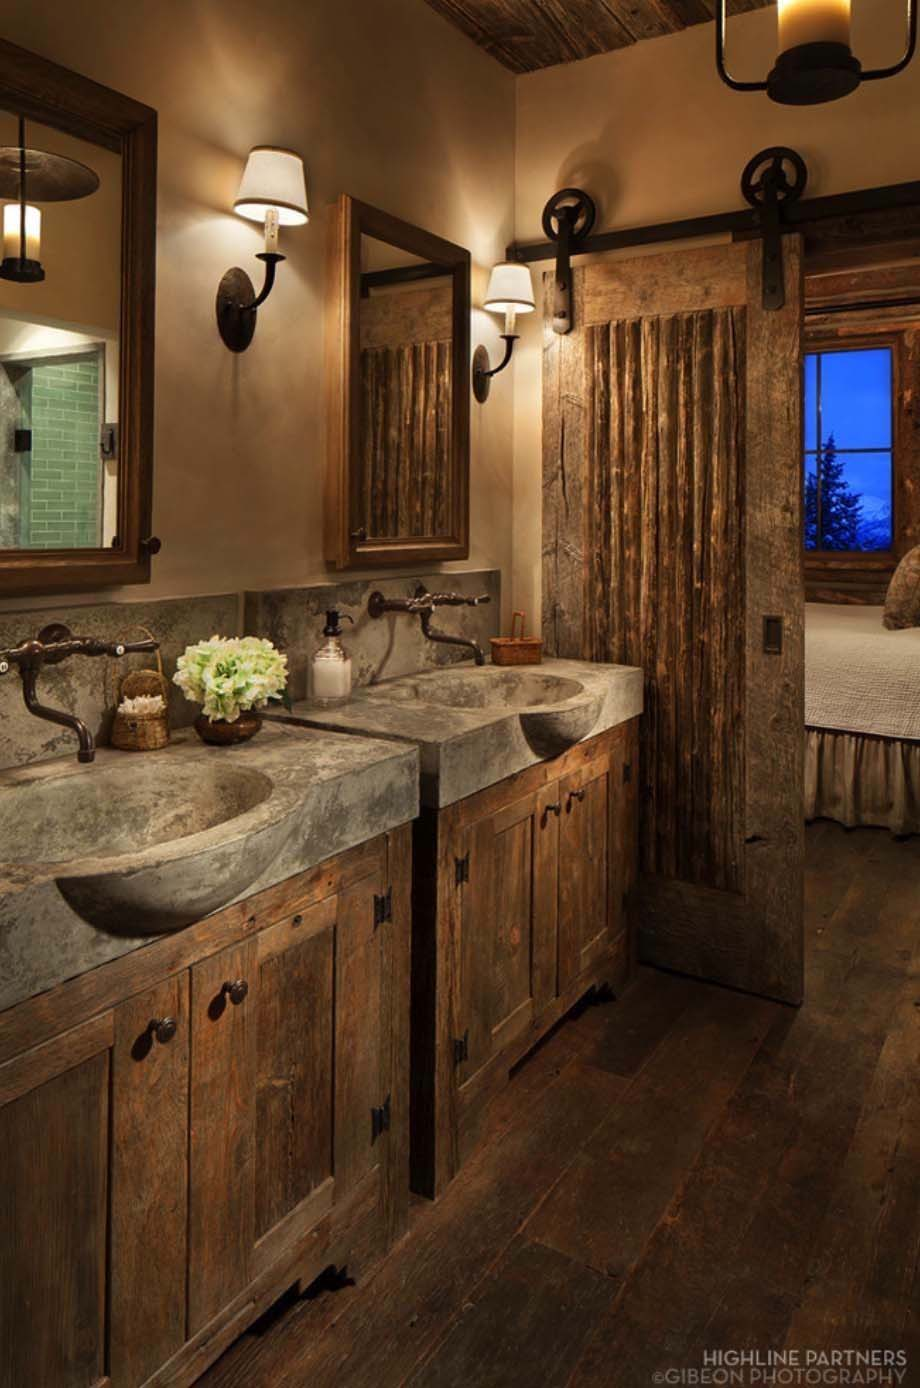 Superb Rustic Bathroom Décor With Concrete Sinks And Barn Door Part 3